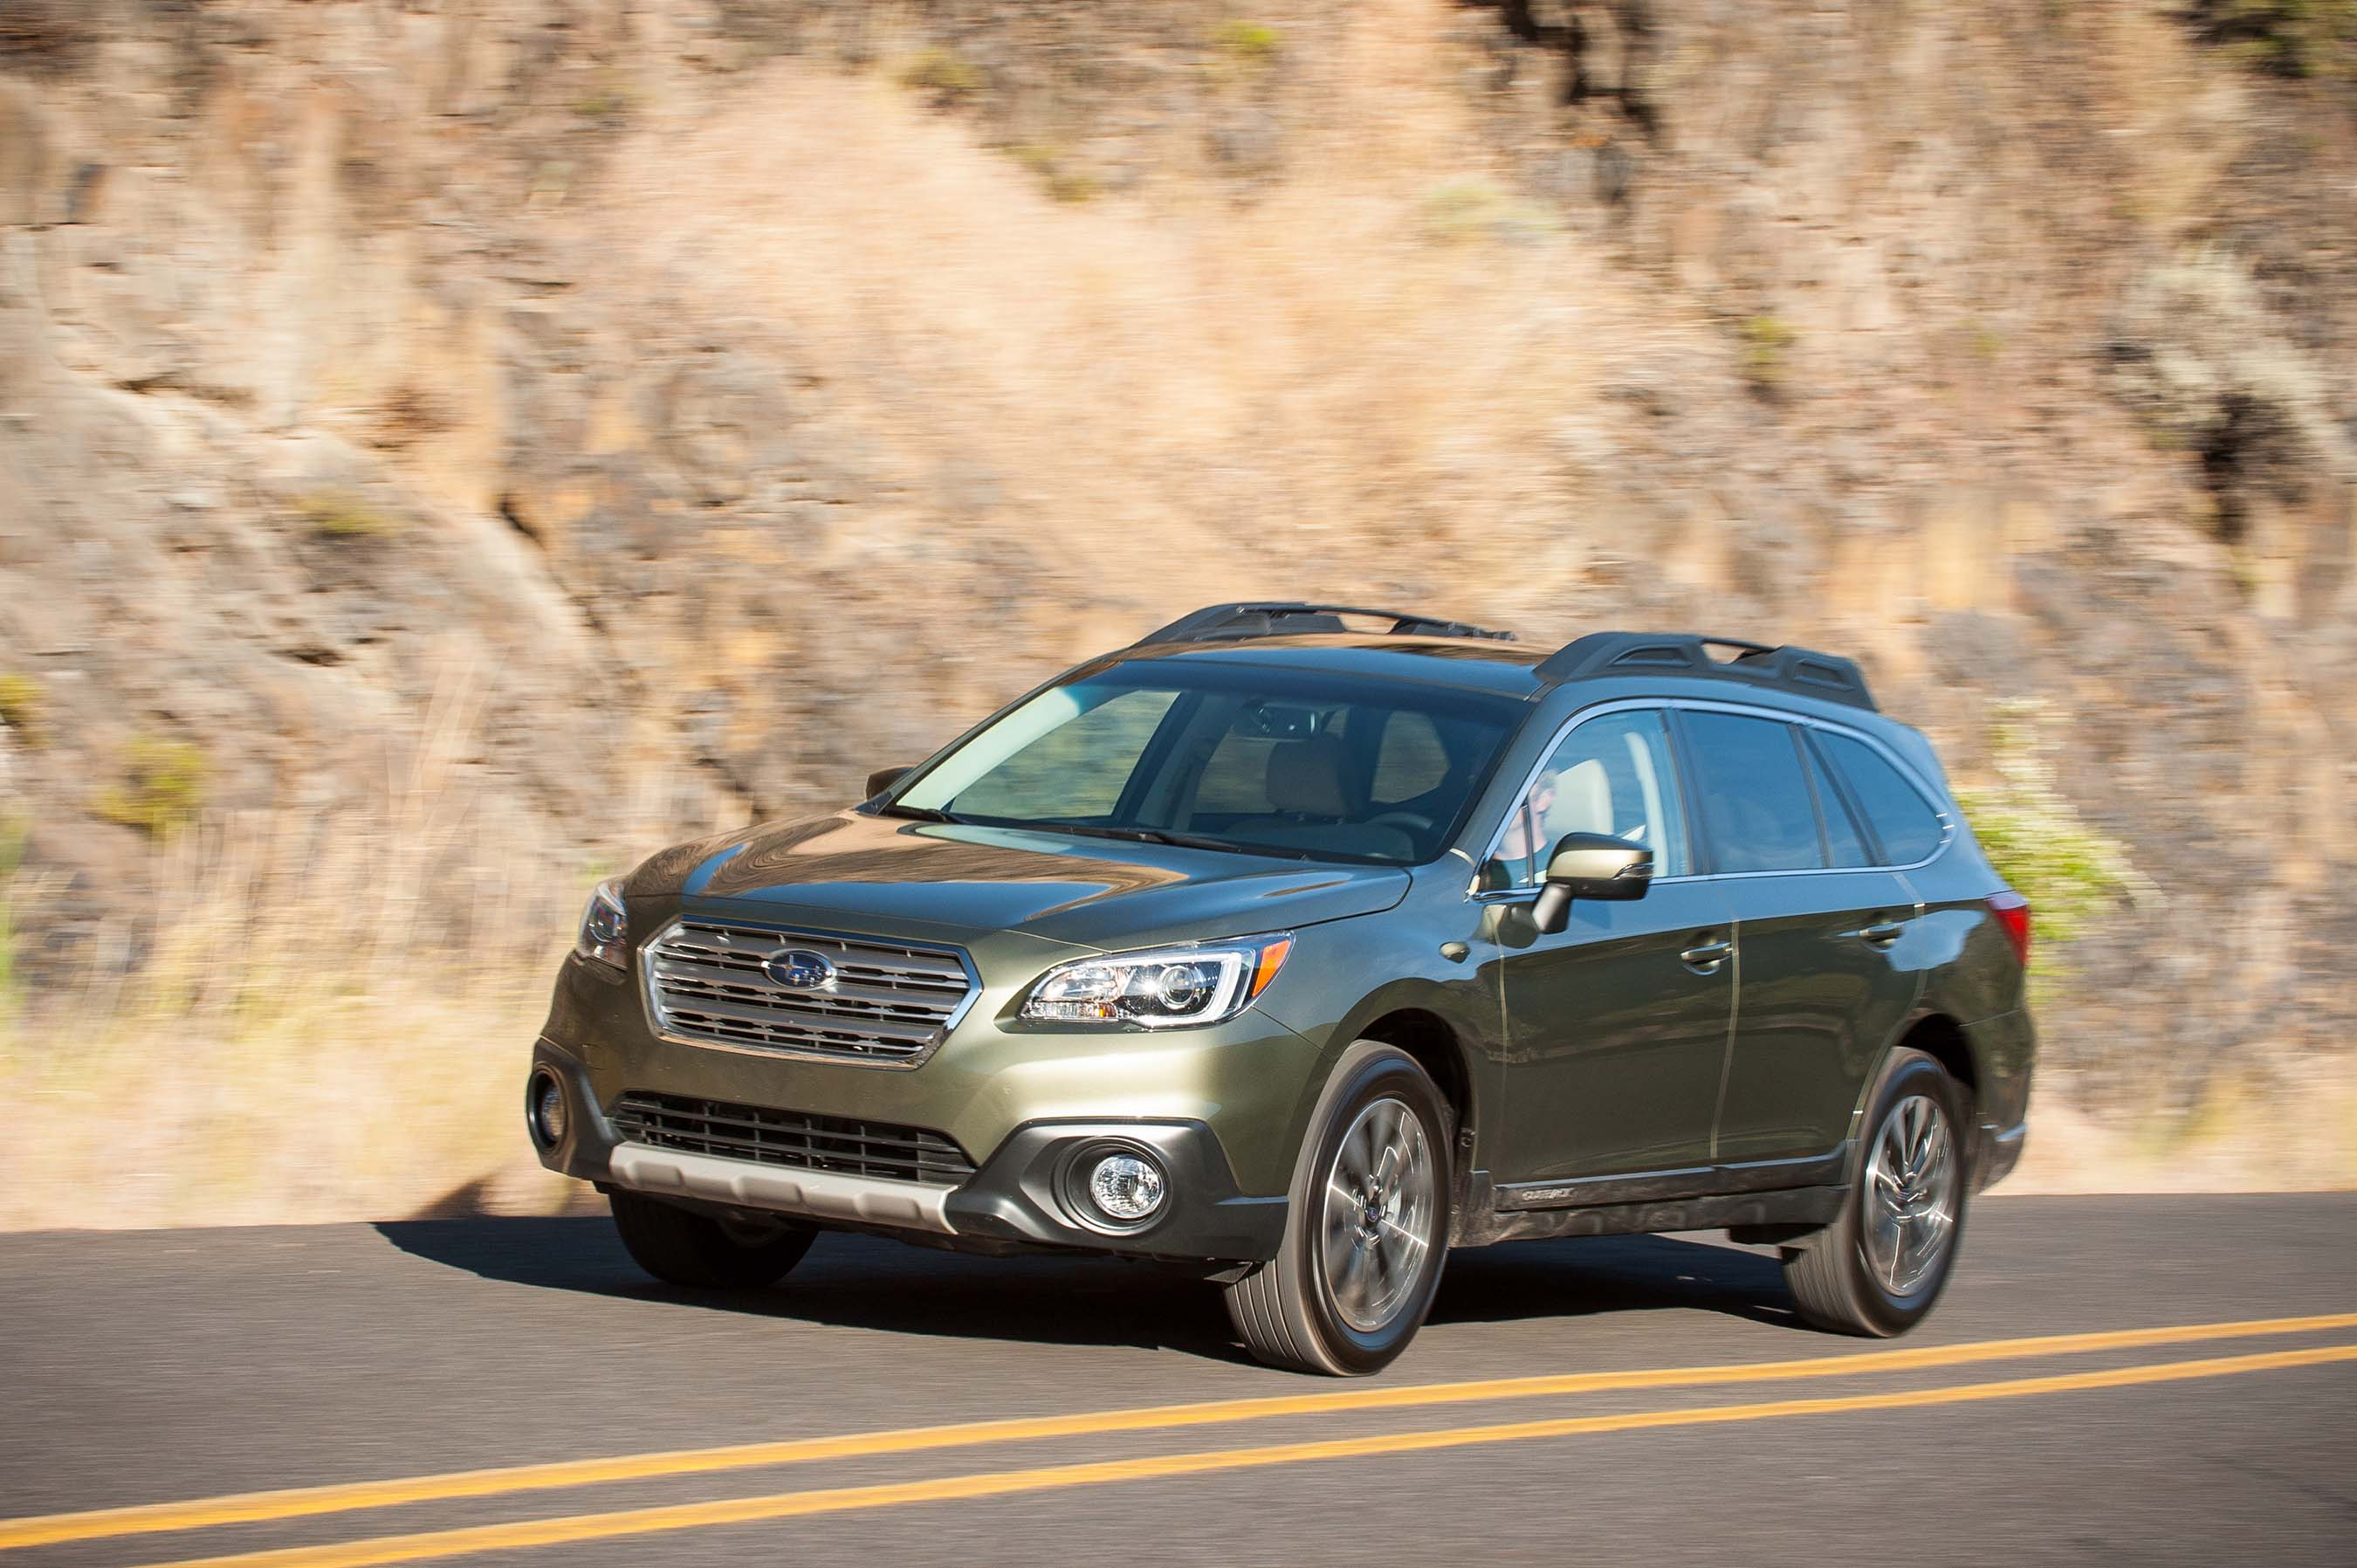 KBB.com 16 Best Family Car: Several of KBB.com's editors agreed that if we could only recommend one car to a majority of buyers, the 2016 Subaru Outback could satisfy the needs of an impressive many.